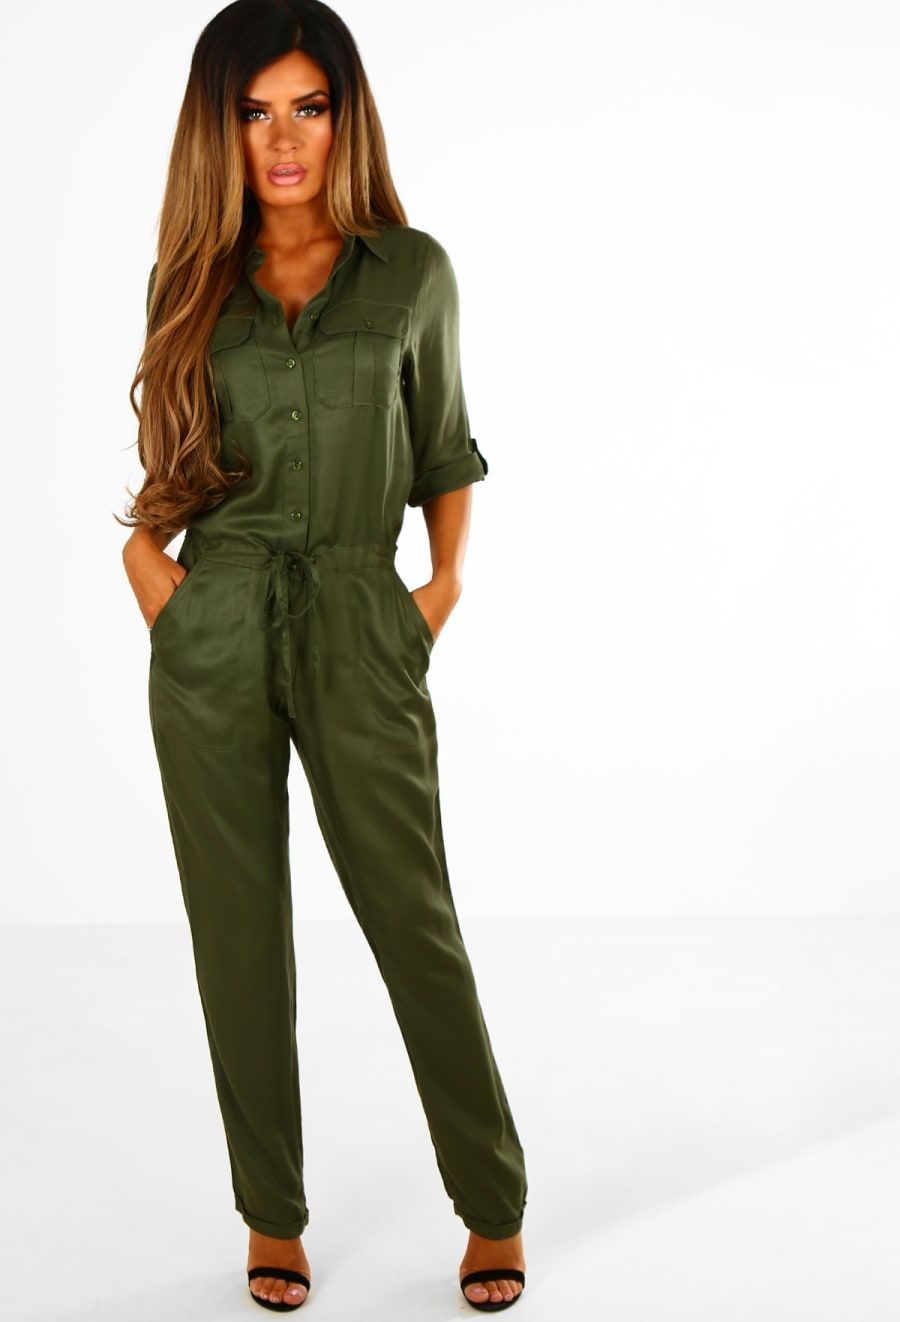 06aae43ee2 Persuade Me Khaki Button Up Utility Jumpsuit - 8